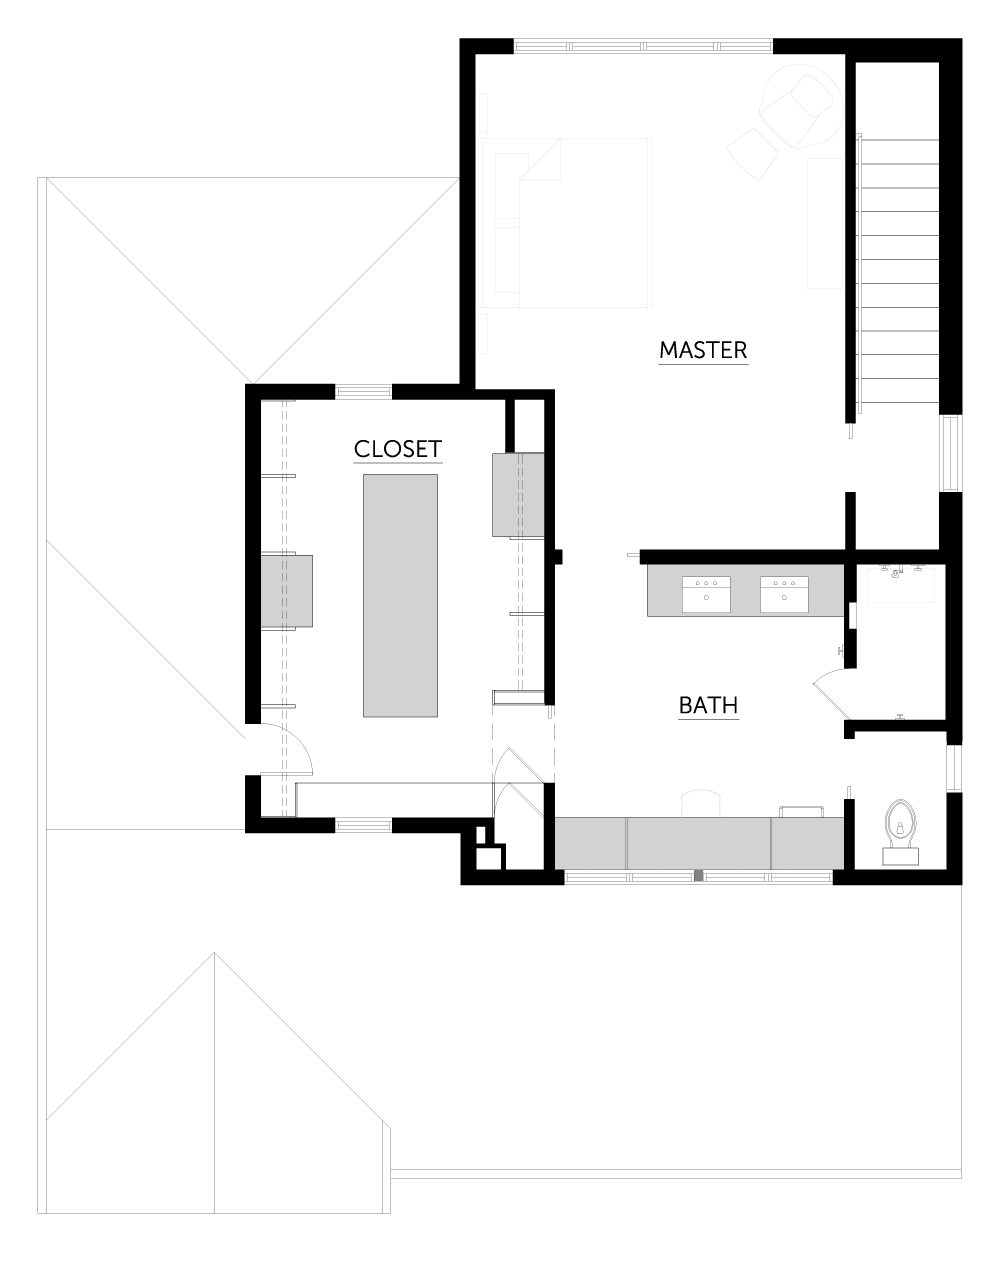 COUCH-After-L2-Plan Floorplan